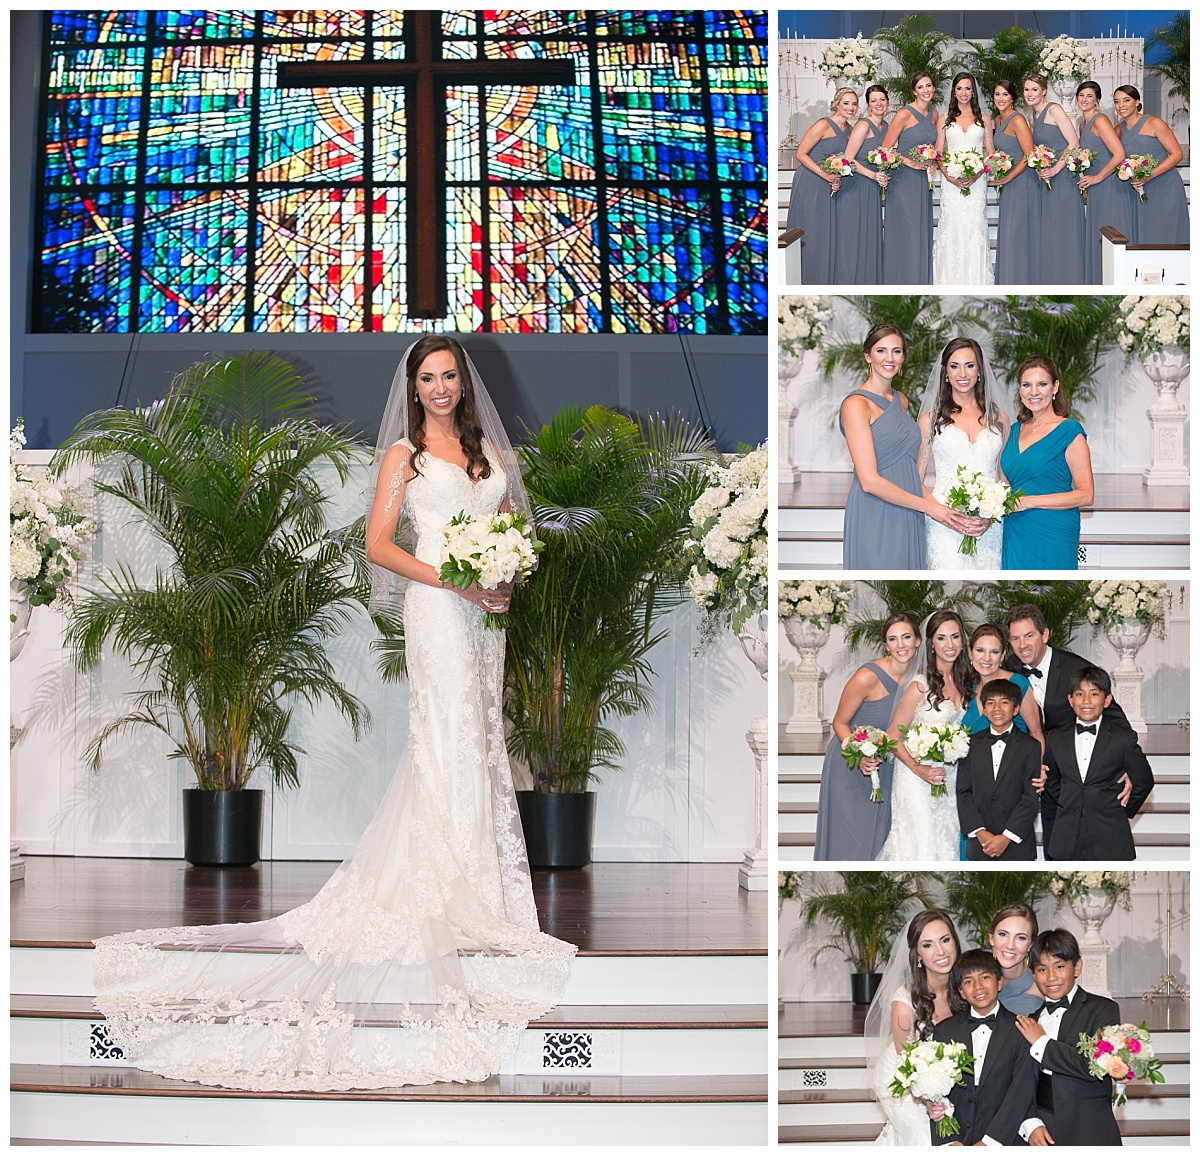 Bride portraits in church